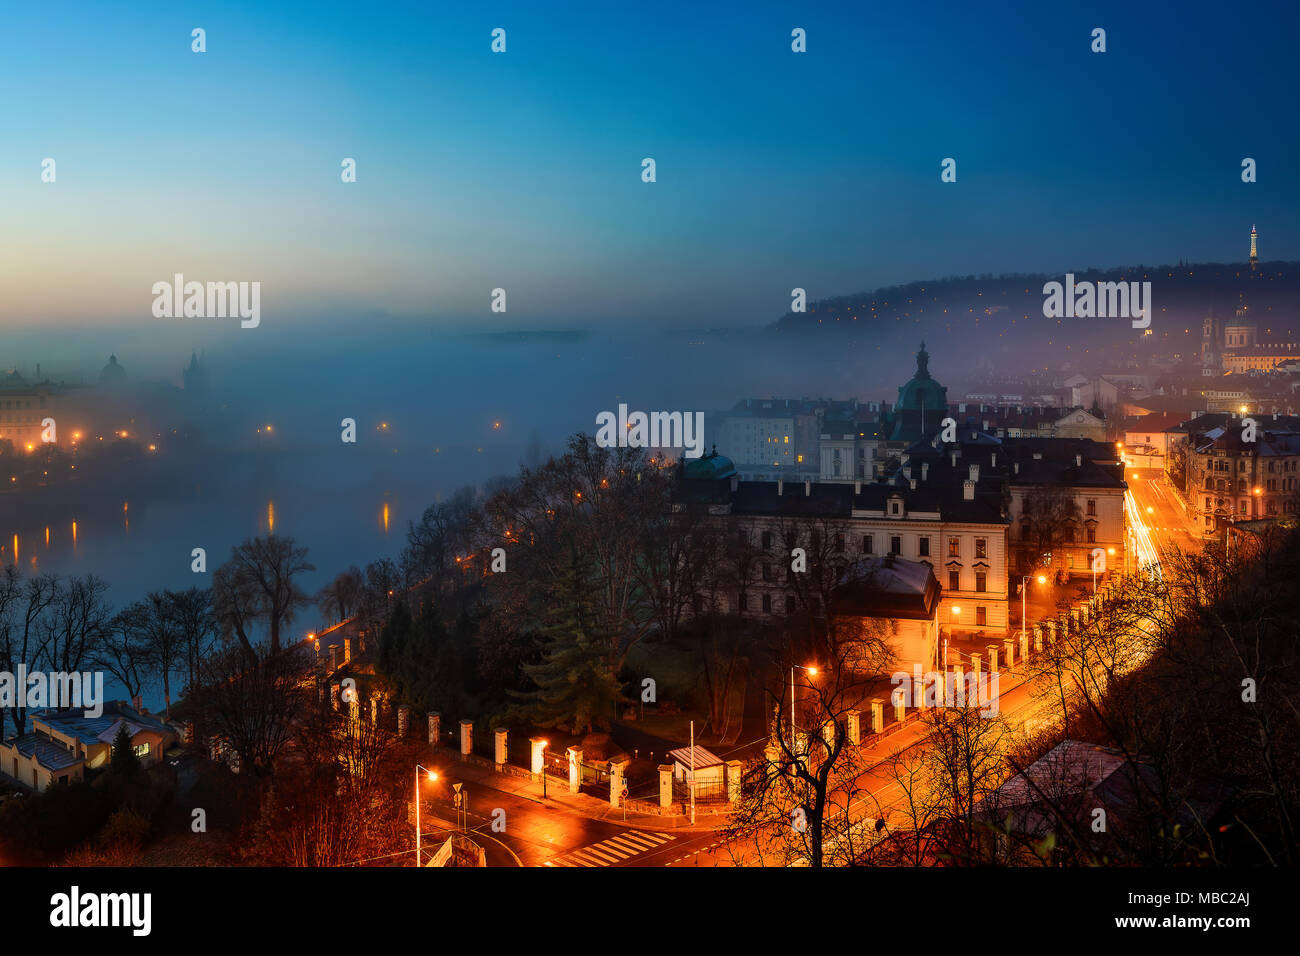 Amazing foggy sunrise. Beautiful morning view at old city downton. Typical autumn view at Chrles bridge, Prague, Czech republic - Stock Image